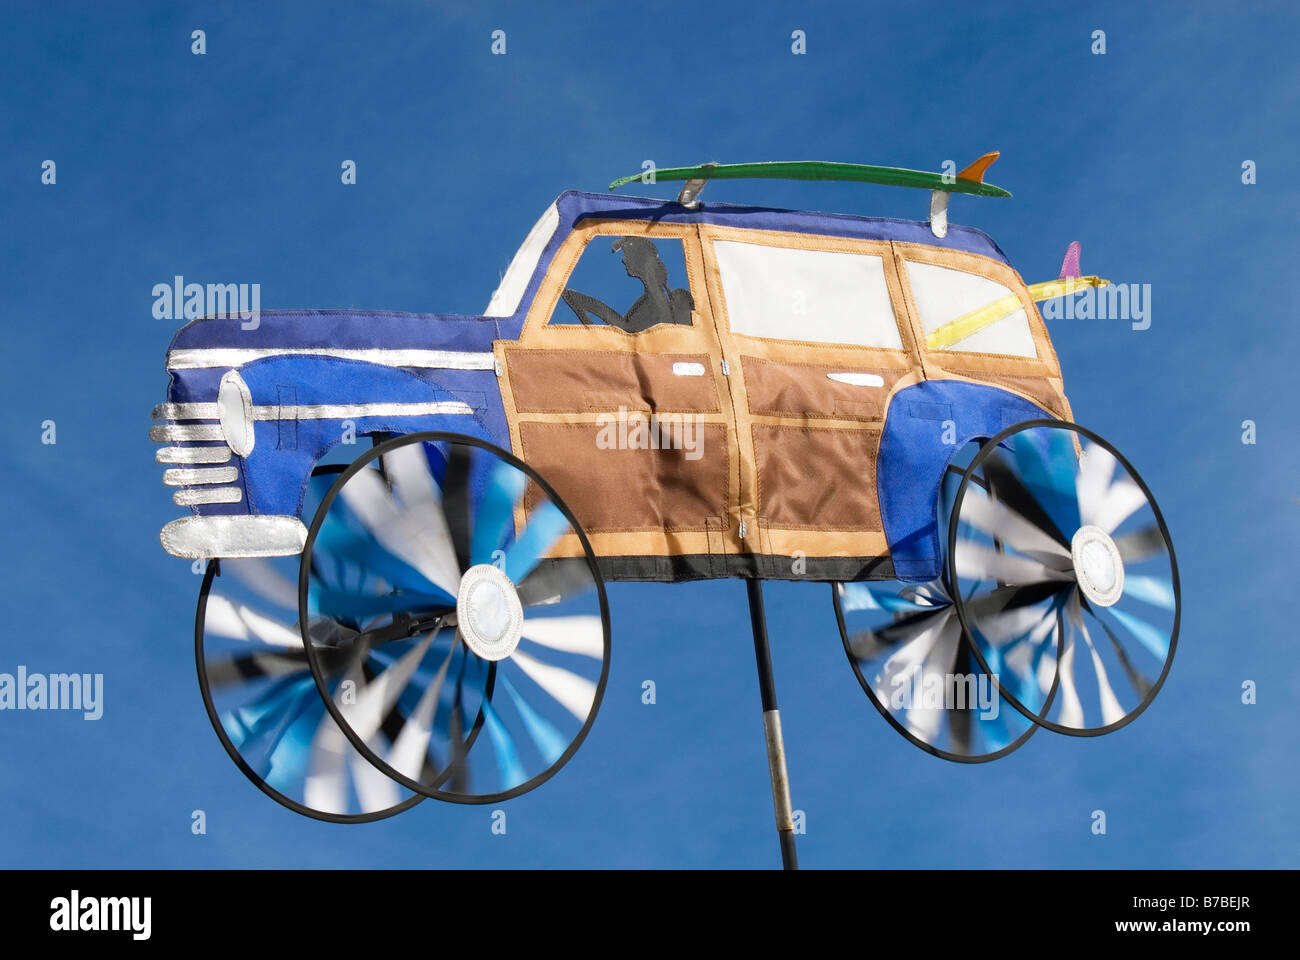 A display of an auto being suspended in the air while the wind moves it Photo taken 14DEC08 in Venice California - Stock Image